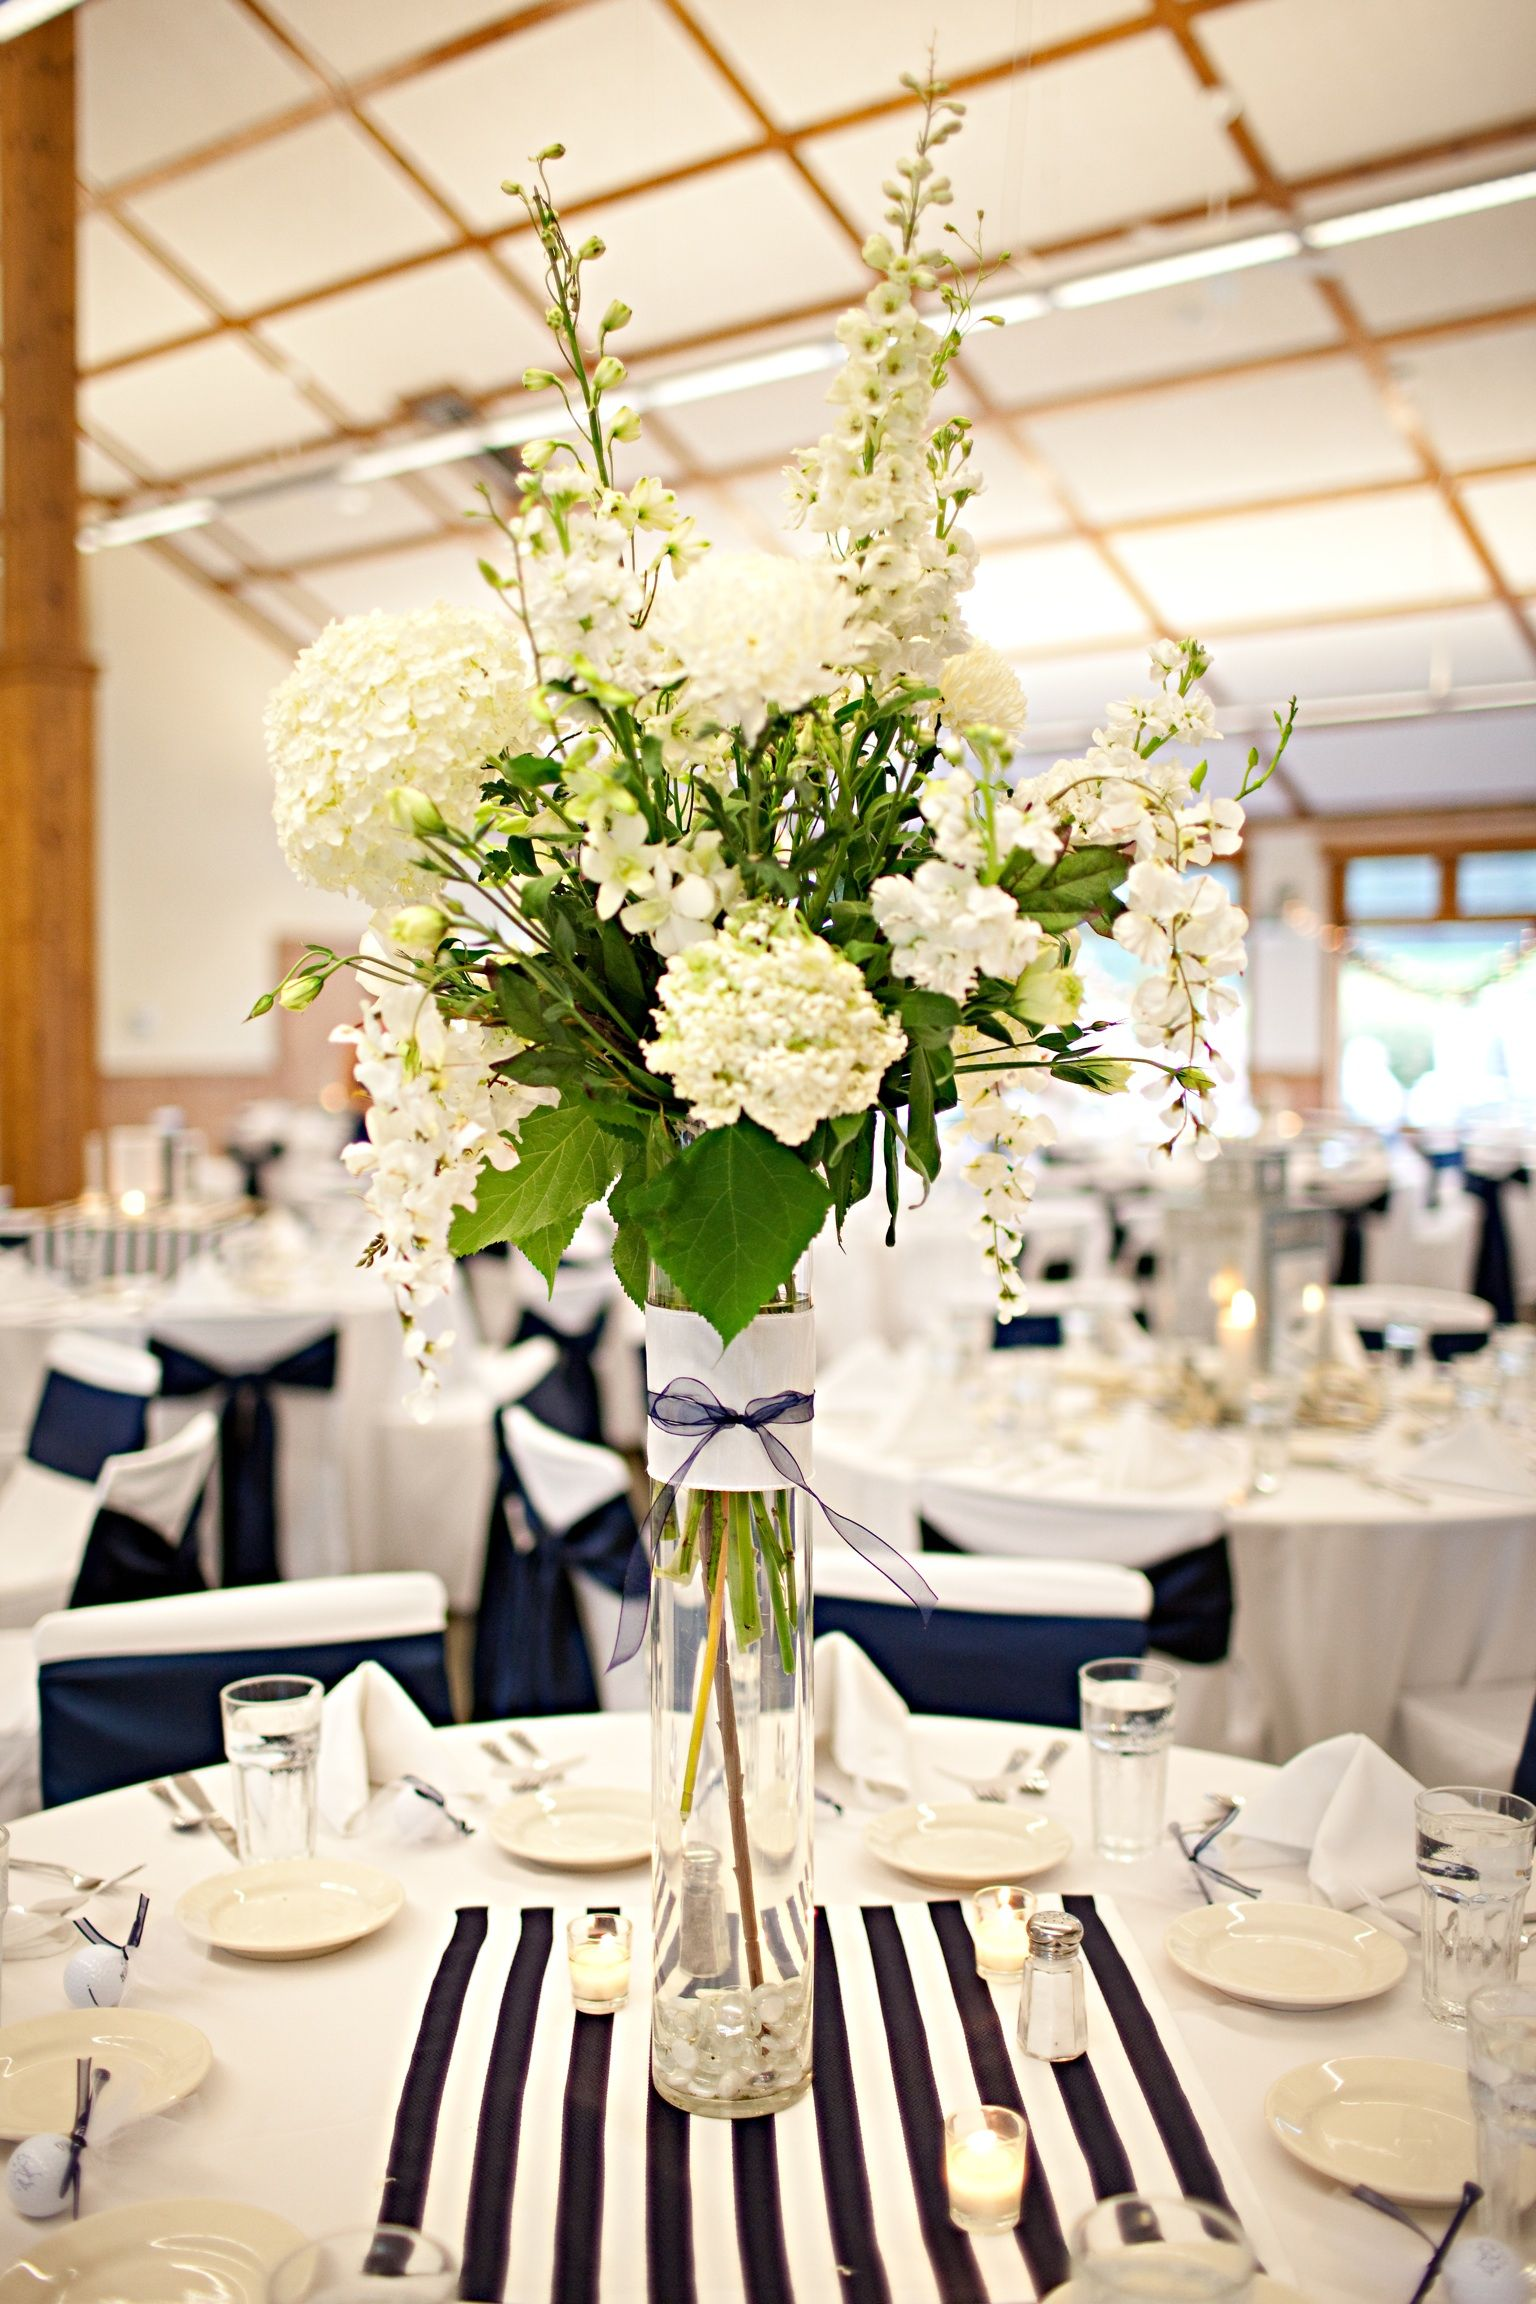 Superbe If I Did Go With The Standard White Table Cloths With White Napkins, I Could